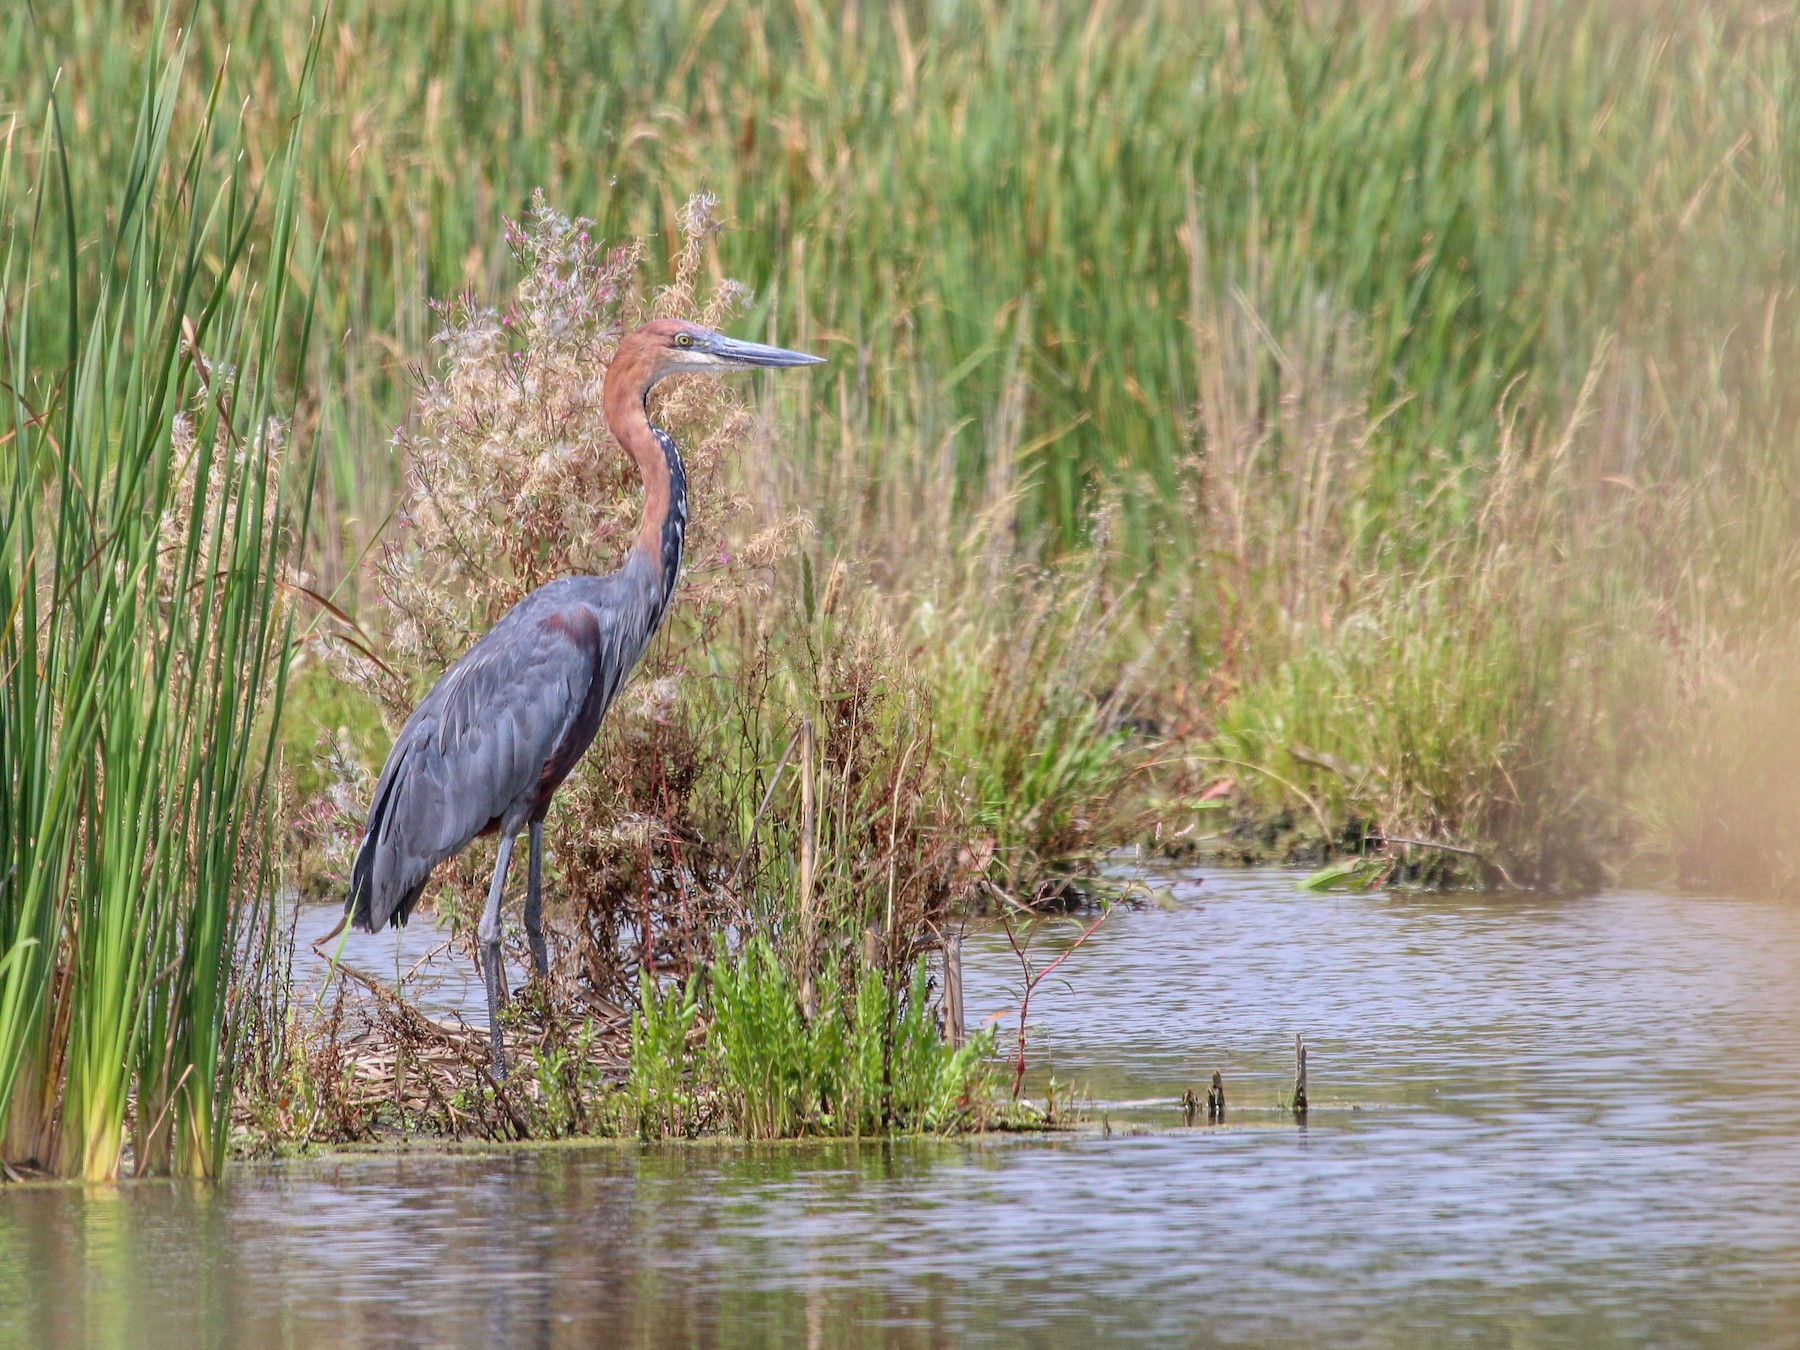 Goliath Heron - Allison Miller